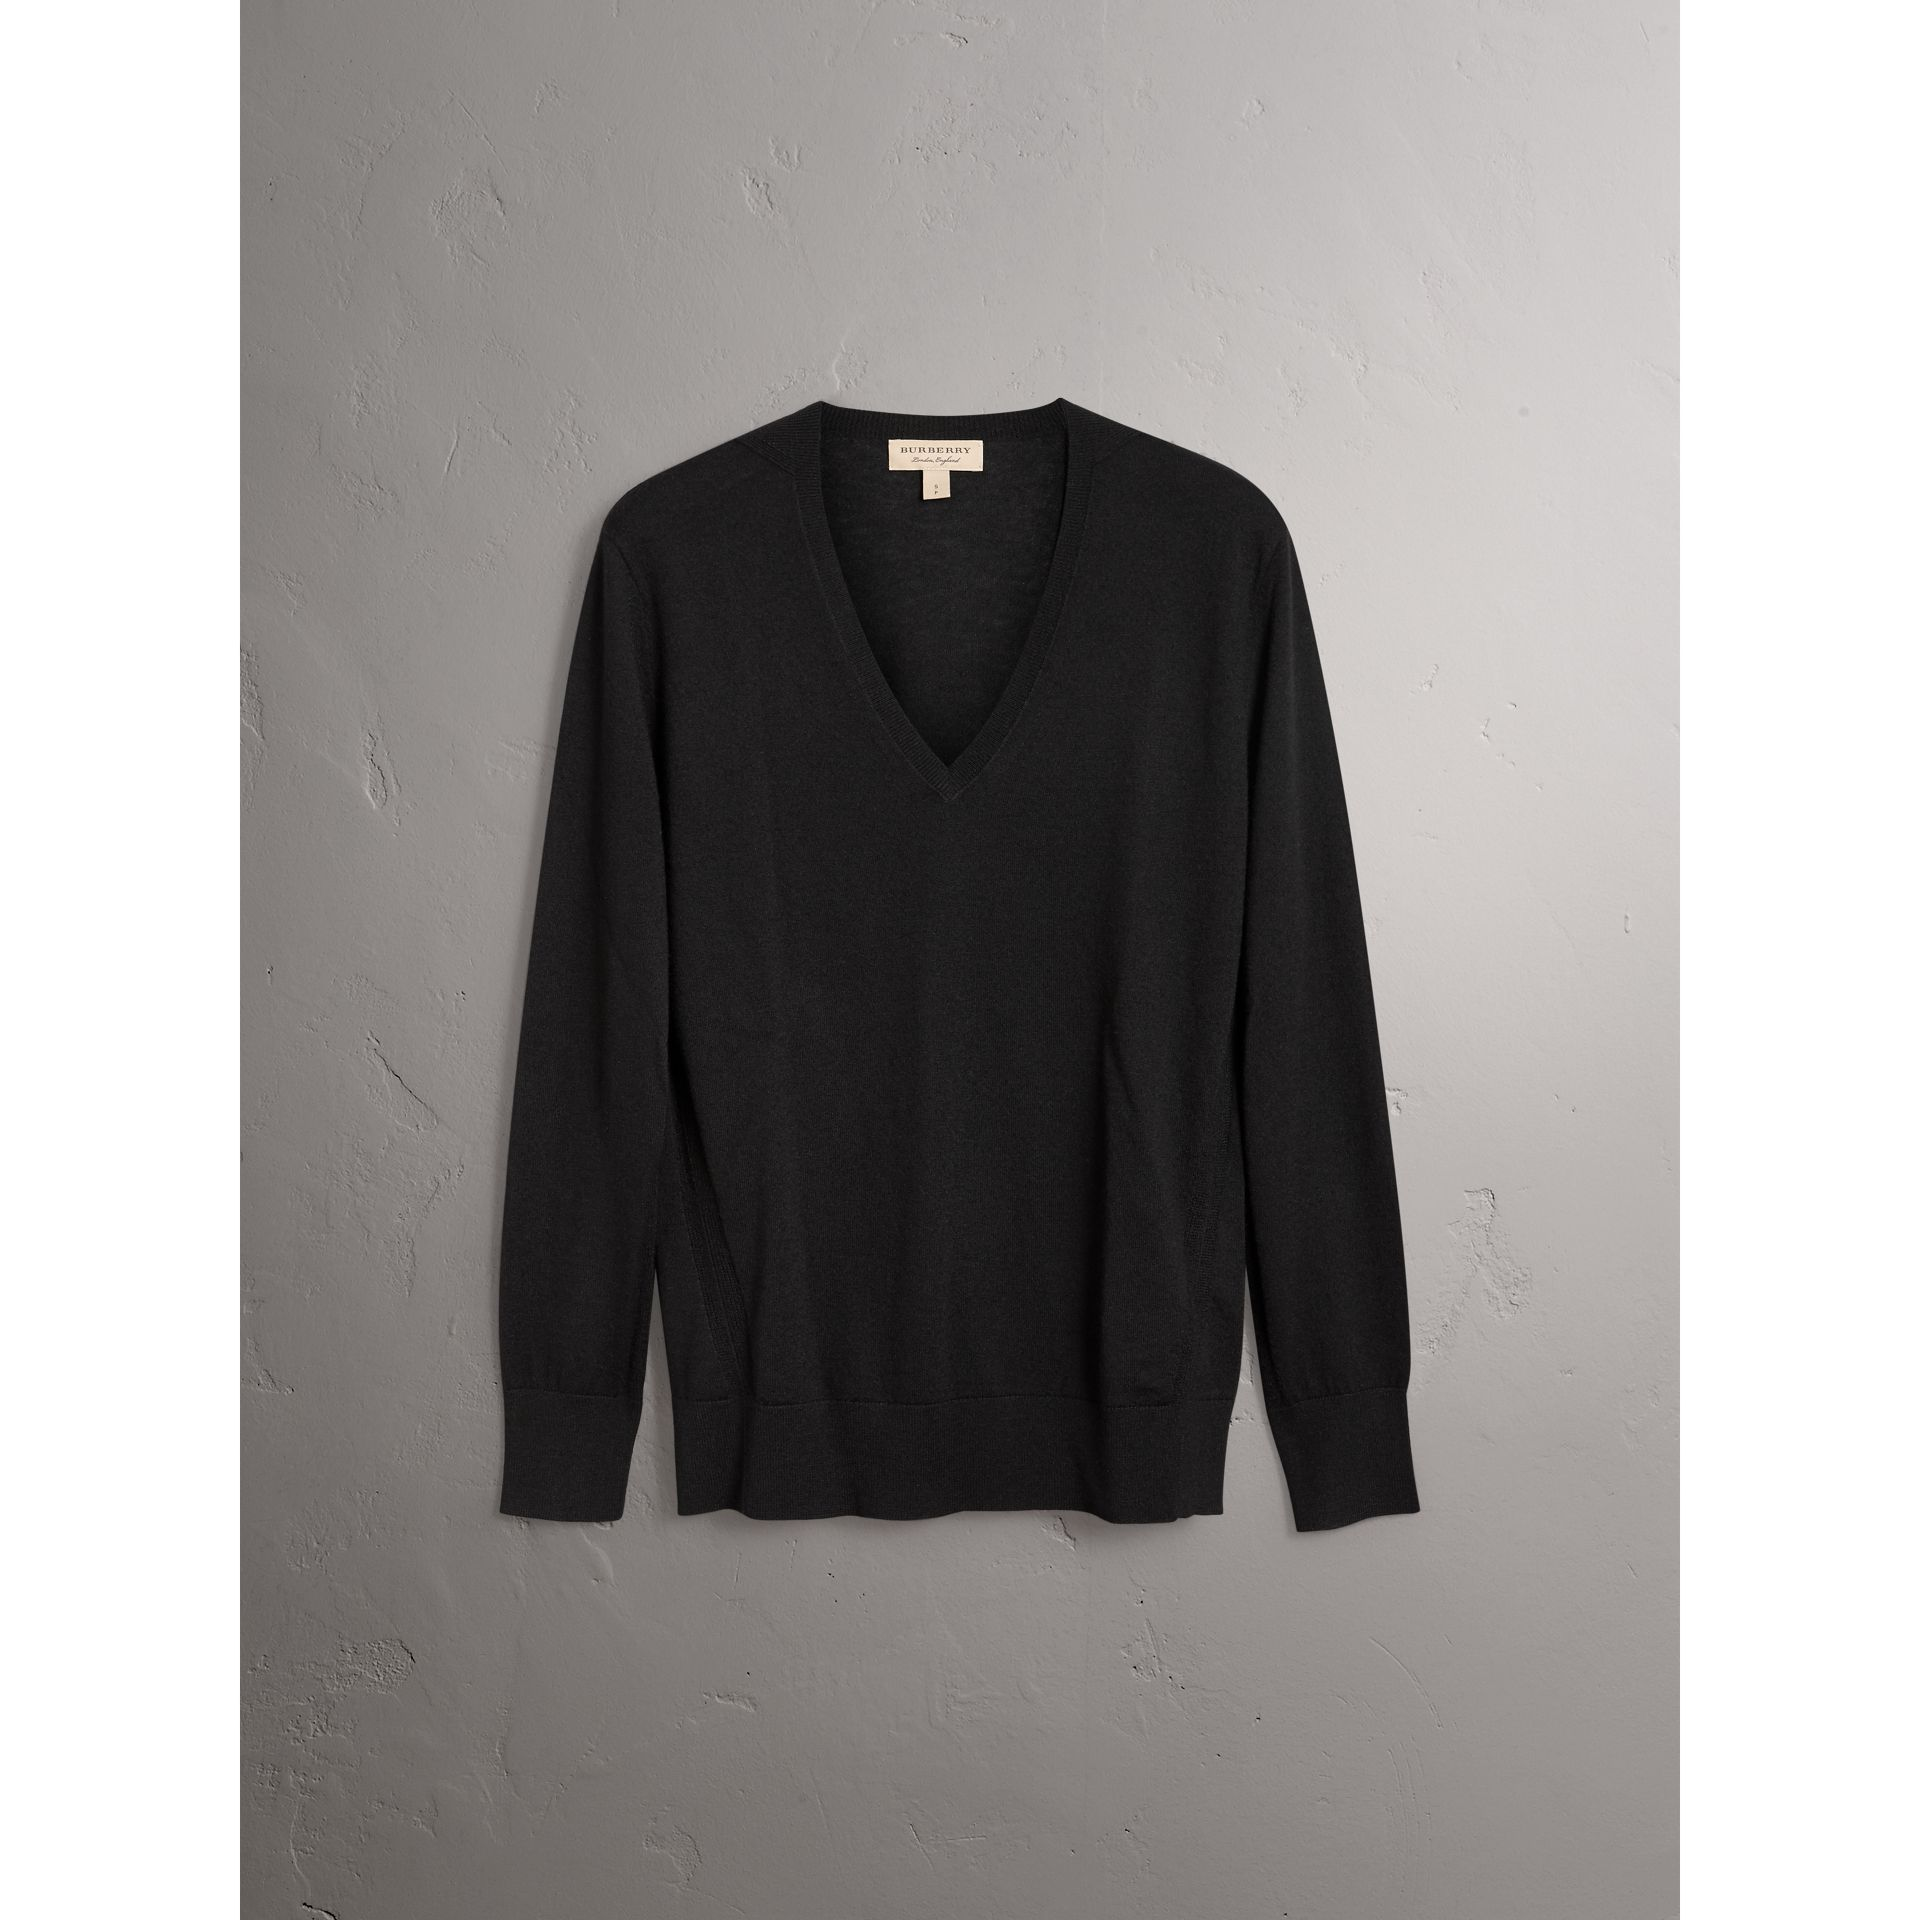 Check Detail Cashmere V-neck Sweater in Black - Women | Burberry - gallery image 3